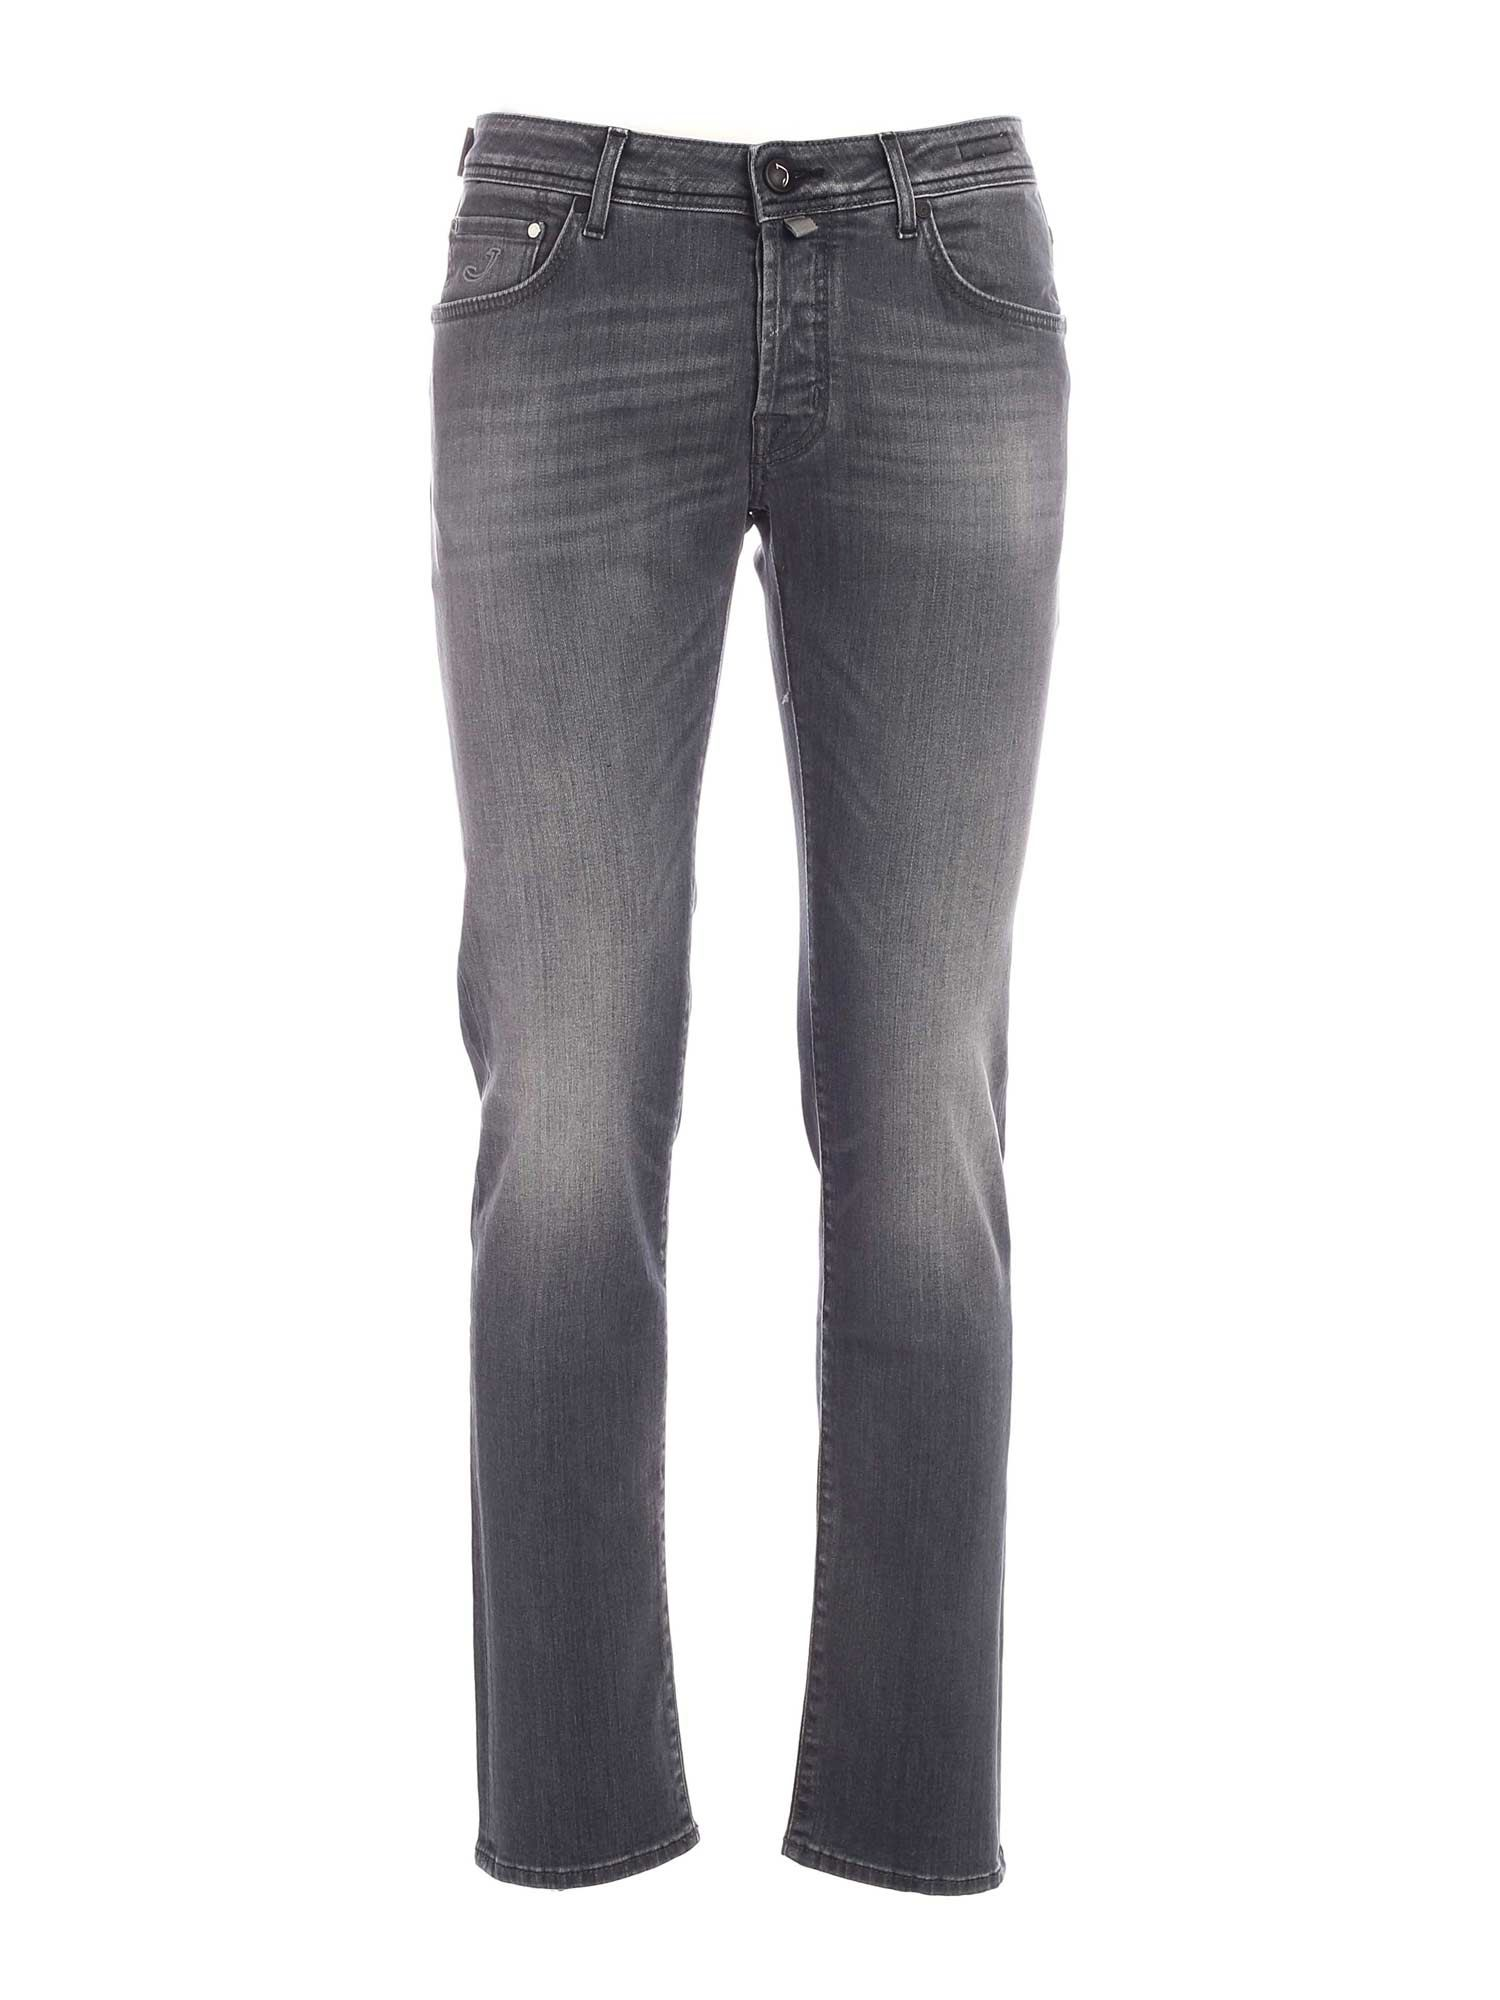 Jacob Cohen Black Logo Faded Jeans In Grey